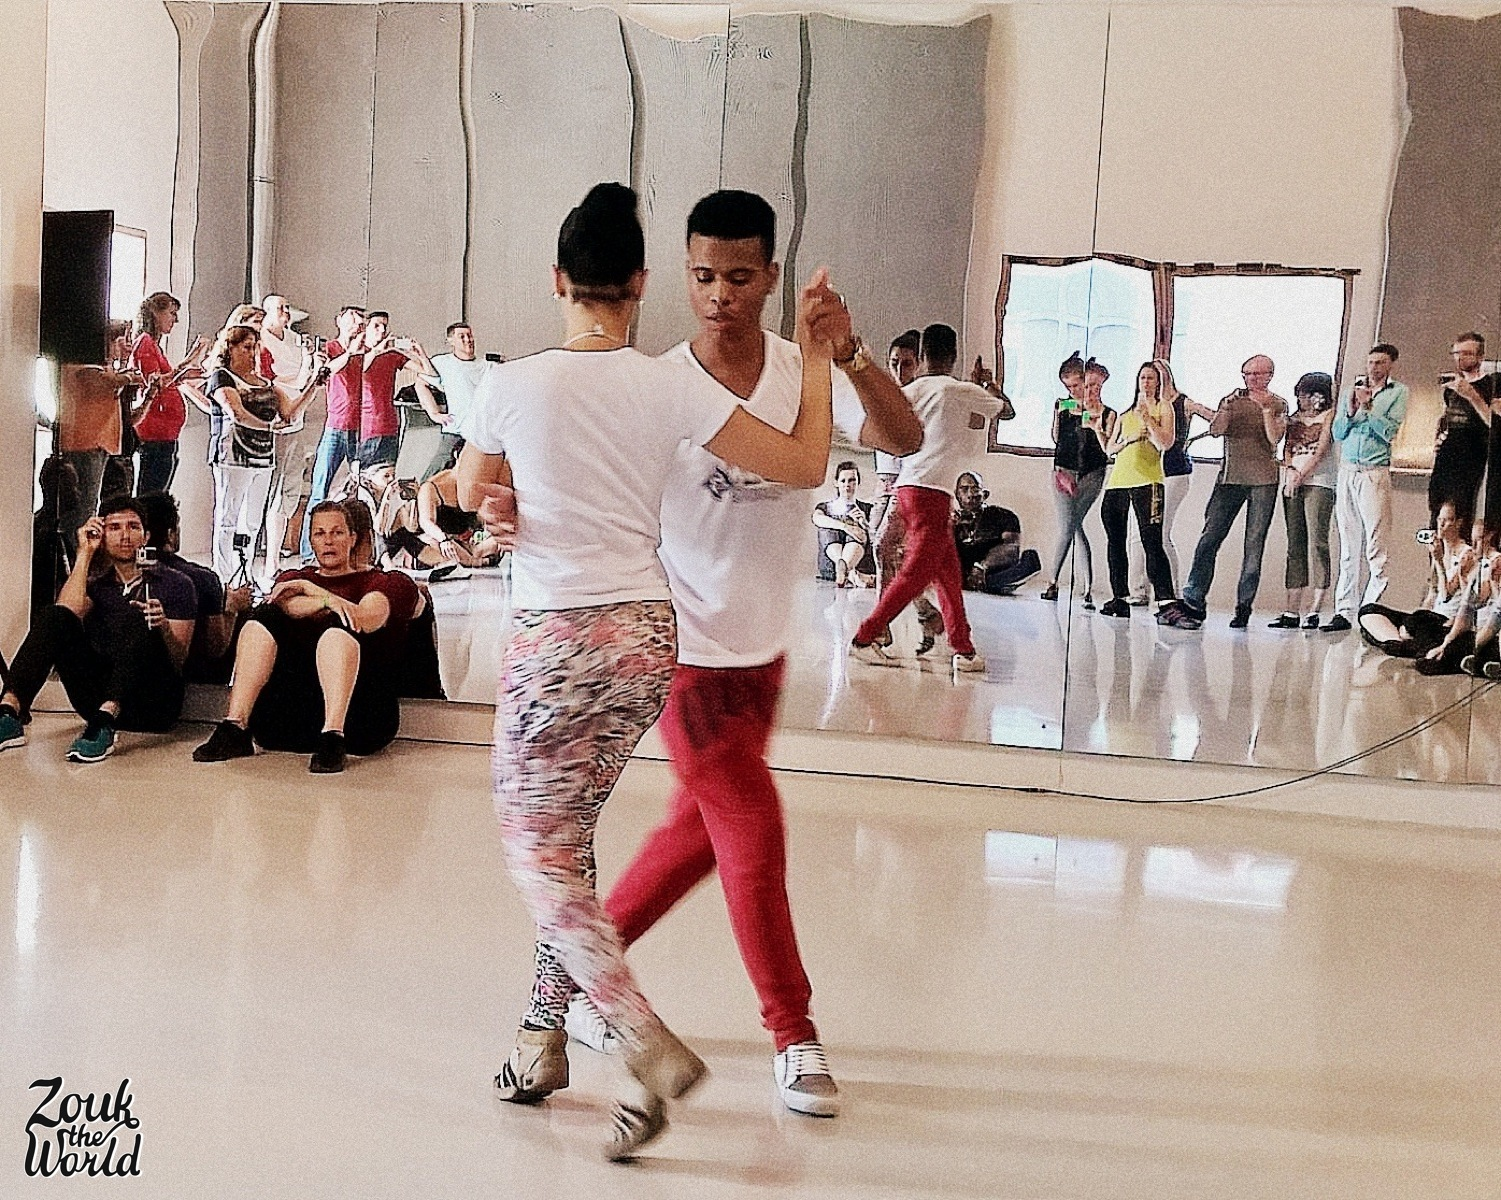 Leo Fortes &Robertinha Stephanie in full swing after their samba class - Hall 3